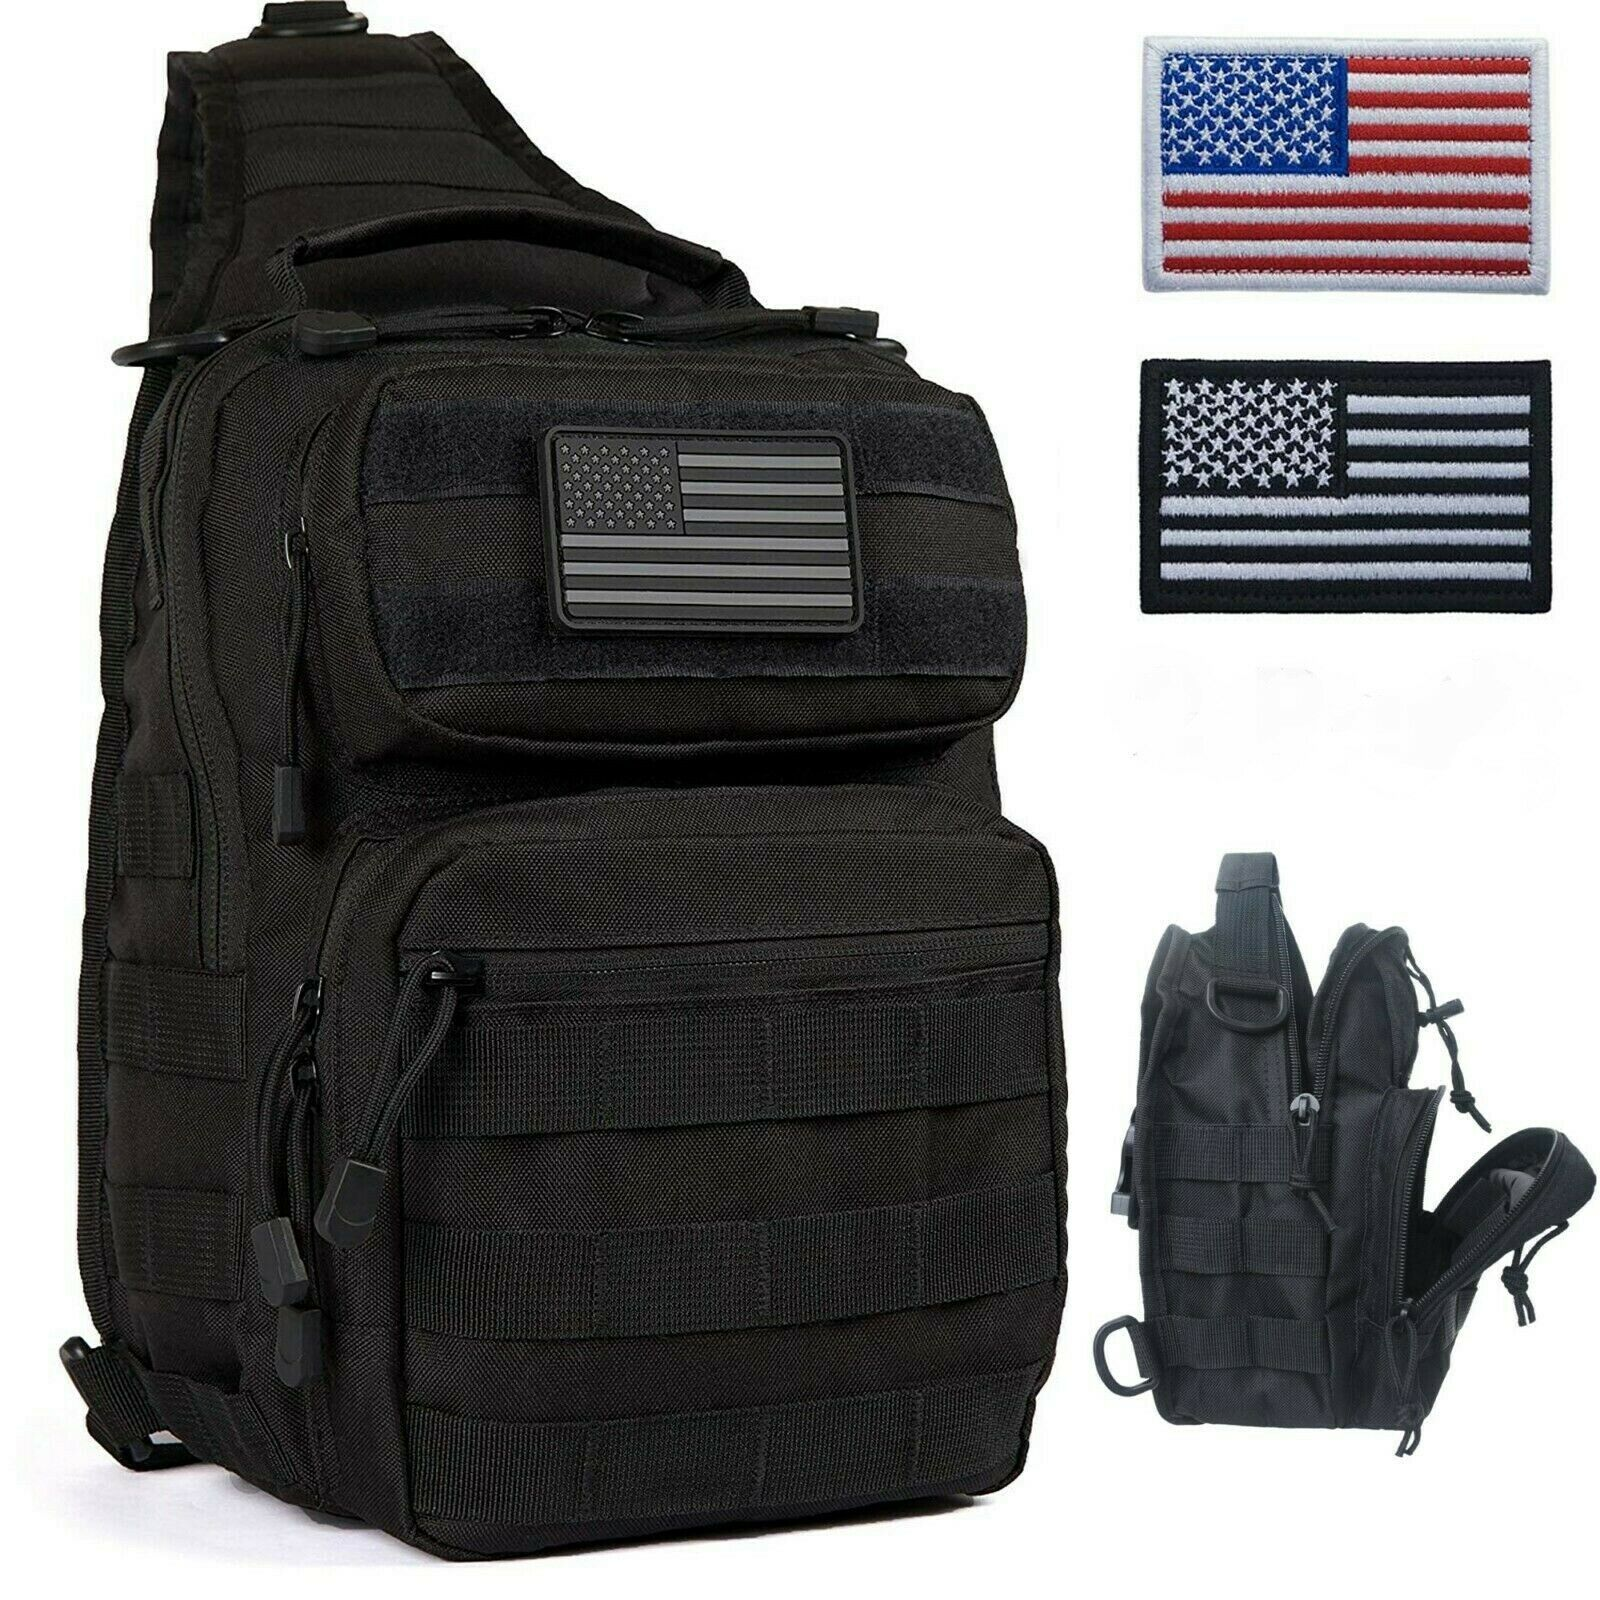 Military Tactical Backpack Molle Sling Bag Traveling Hiking Trekking C...